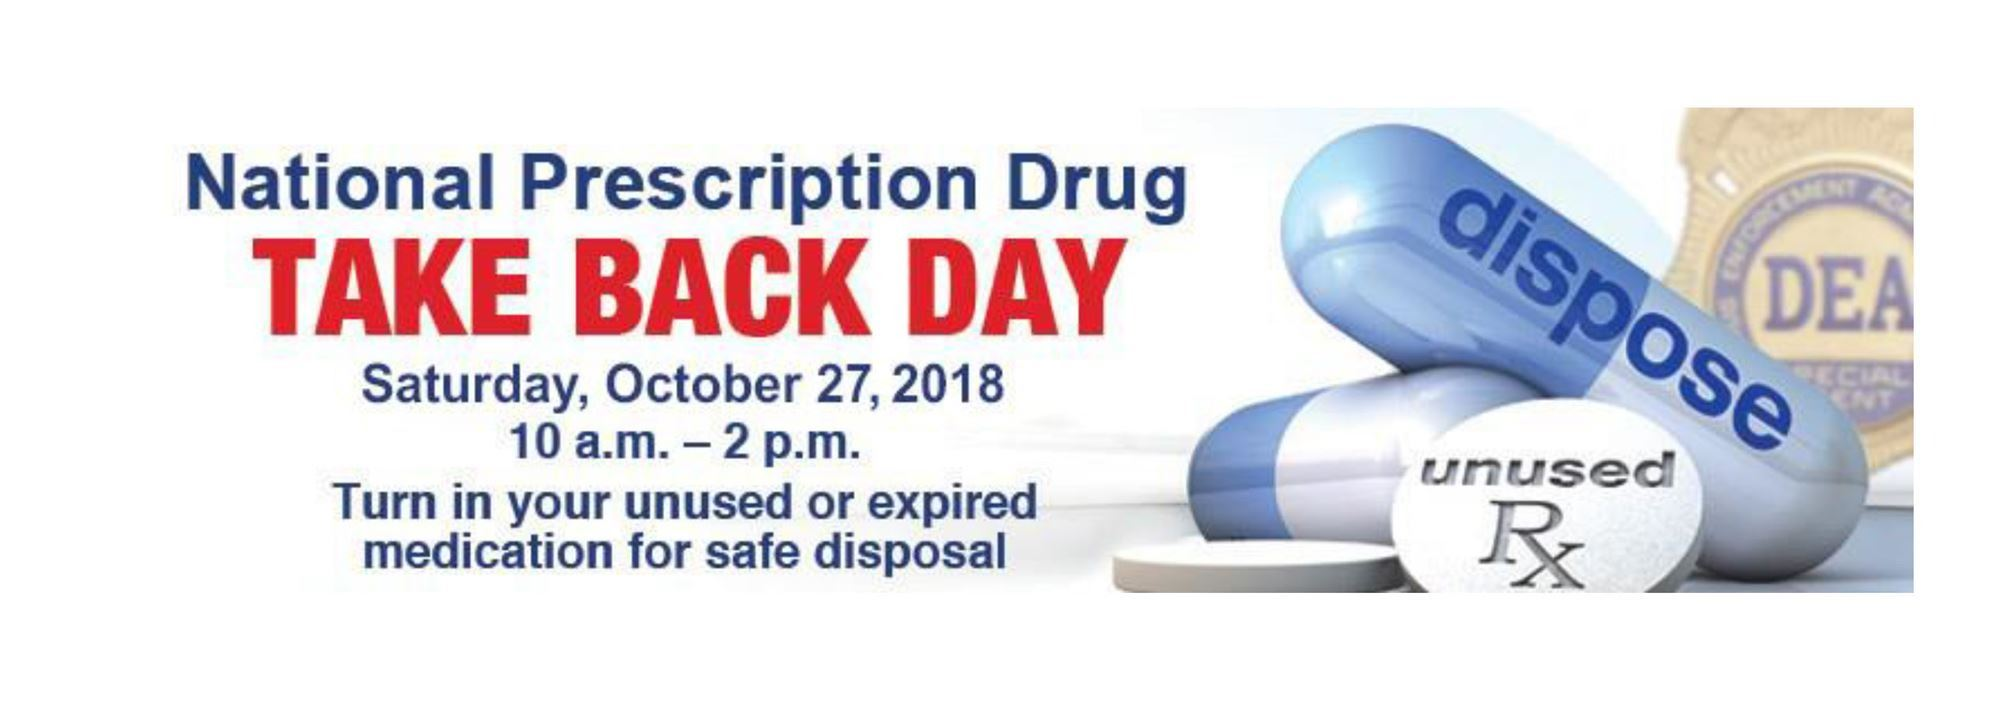 national drug take back Oct 27 2018